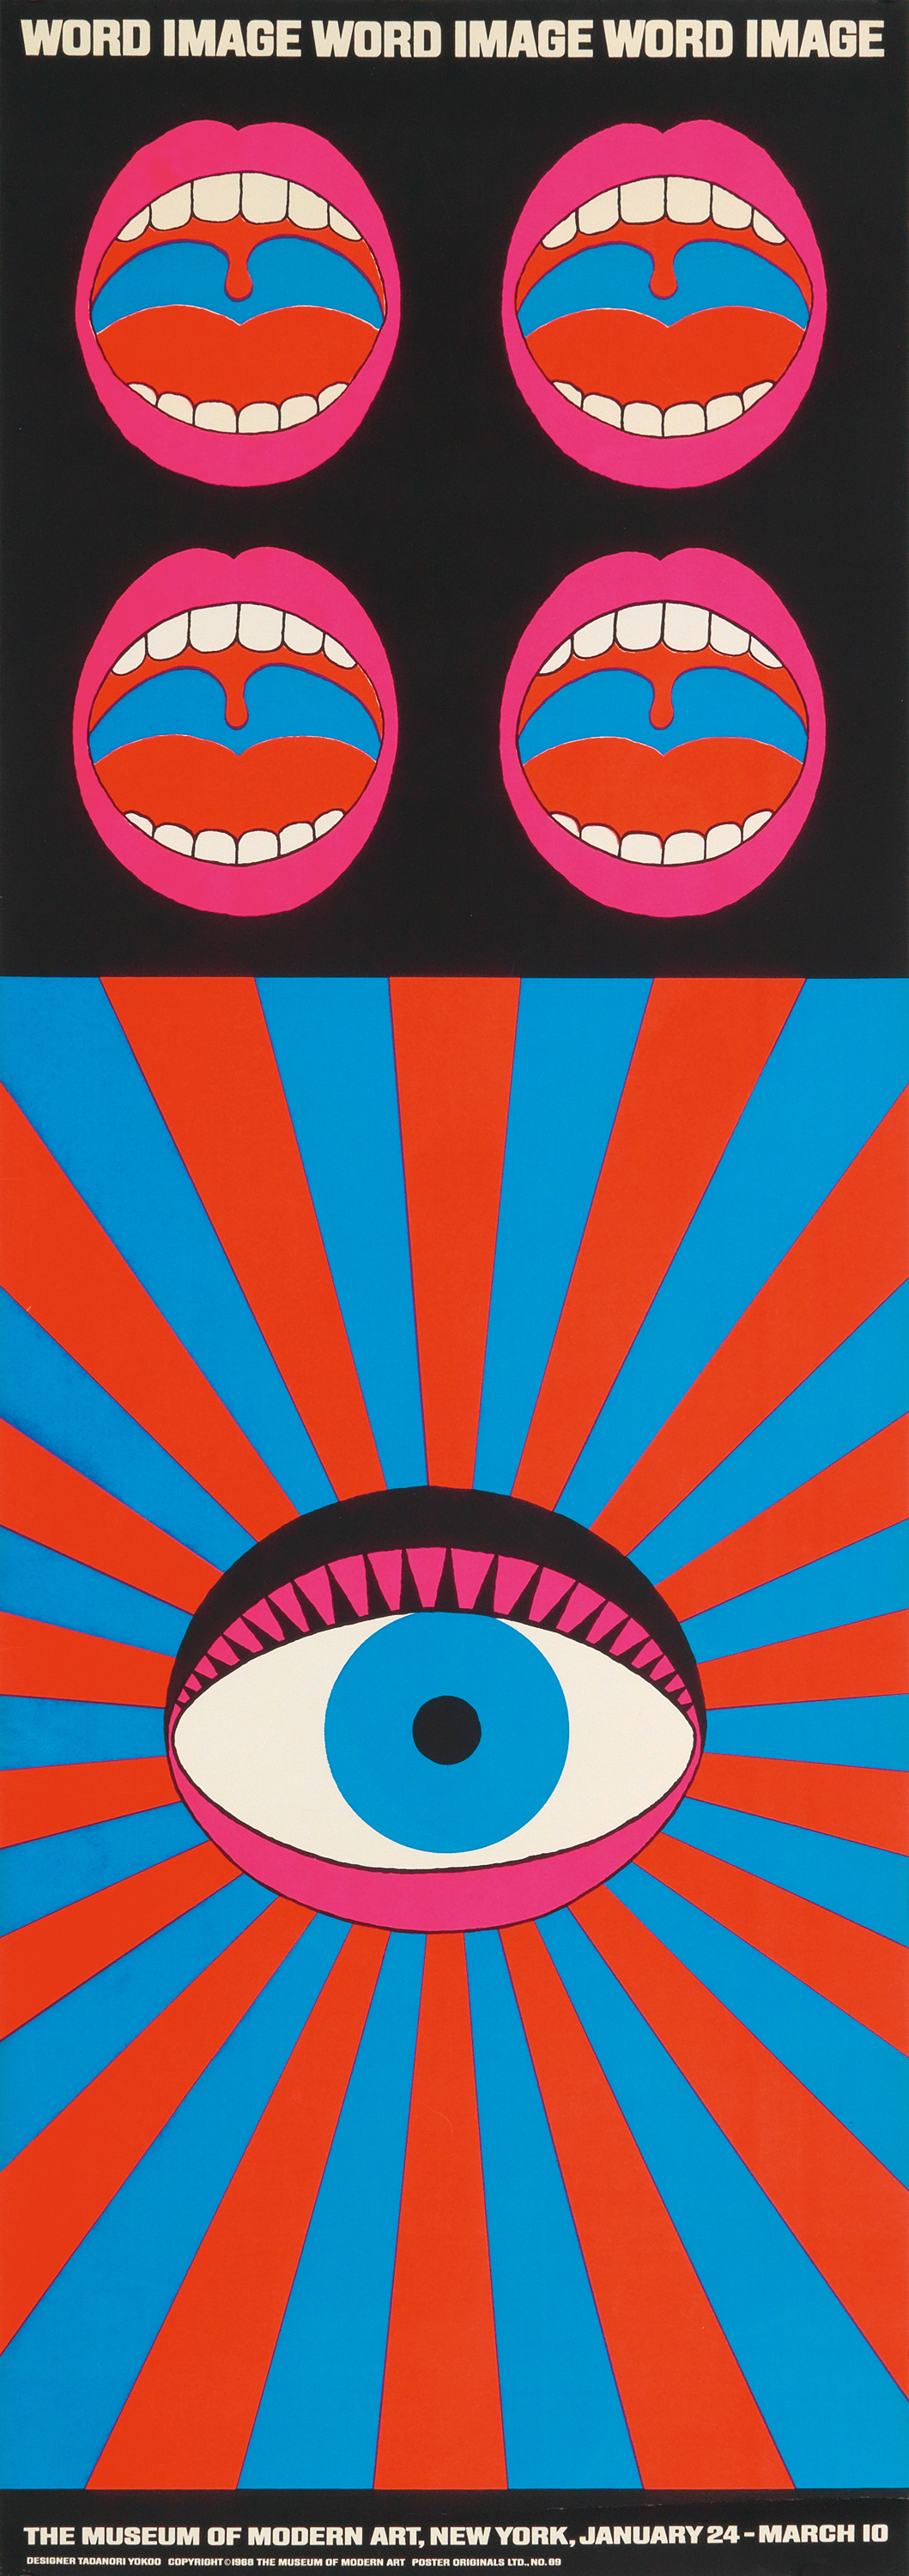 Word Image, a poster designed by Tadanori Yokoo for a 1968 show at the Museum of Modern Art (MoMA).